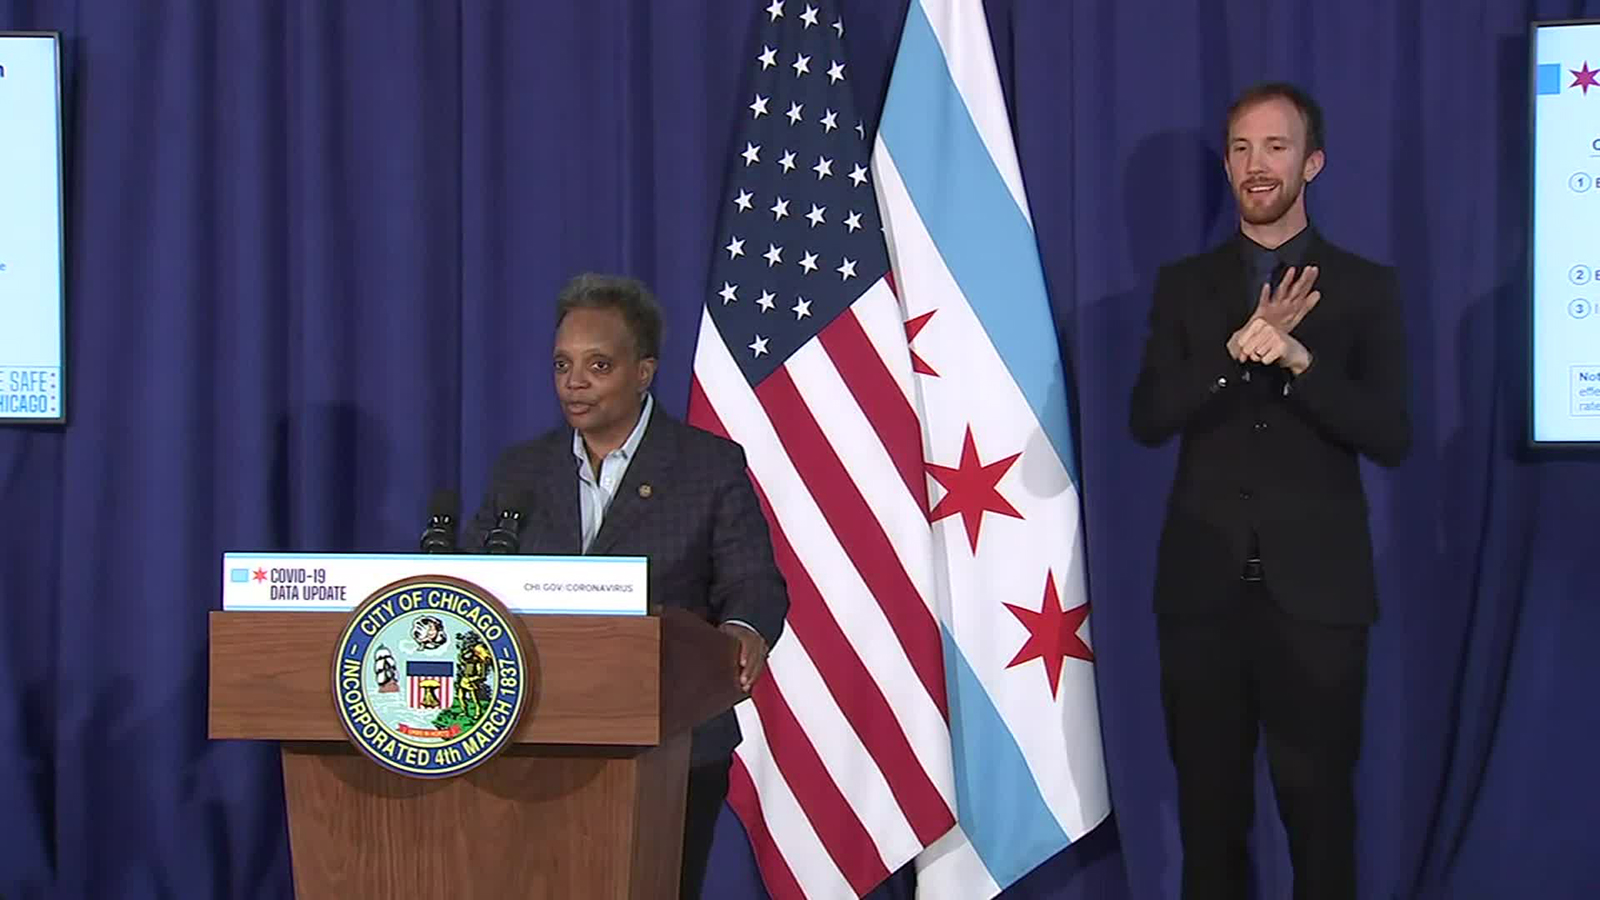 Chicago mayor unveils changes to search warrant policy in the fallout of a botched raid on social worker's home